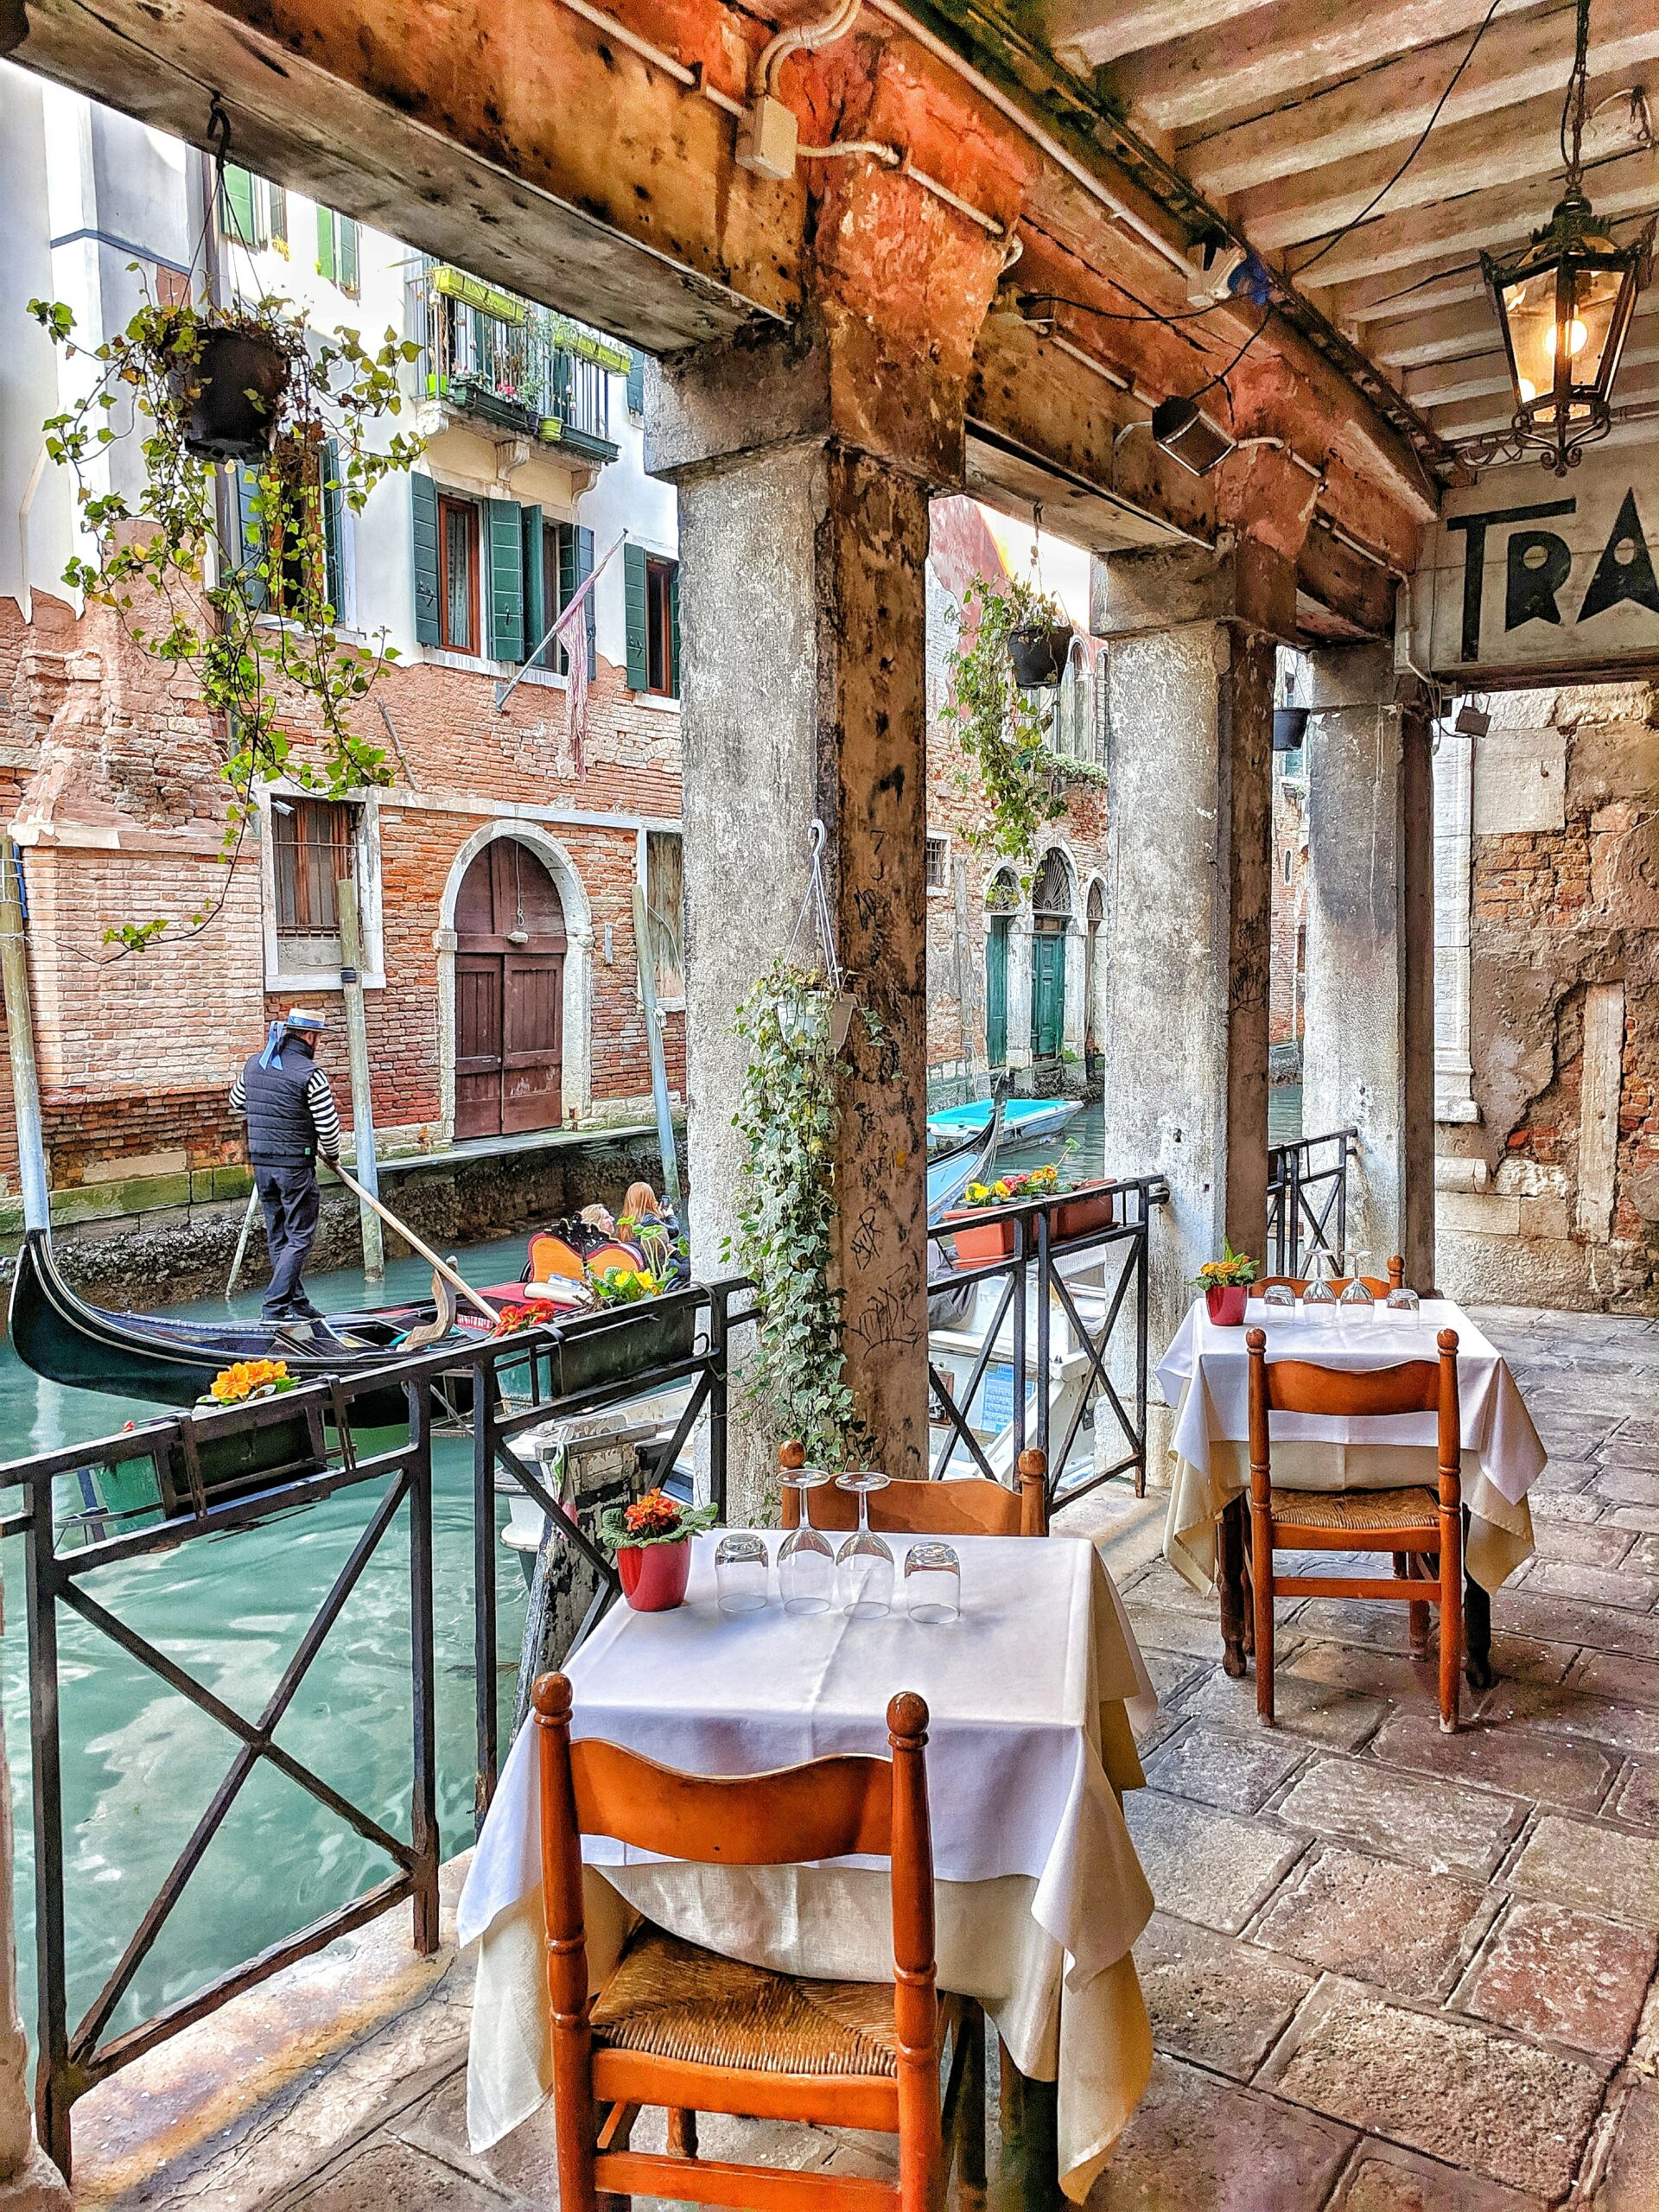 Italy - People riding in a boat passing by a restaurant in Venice